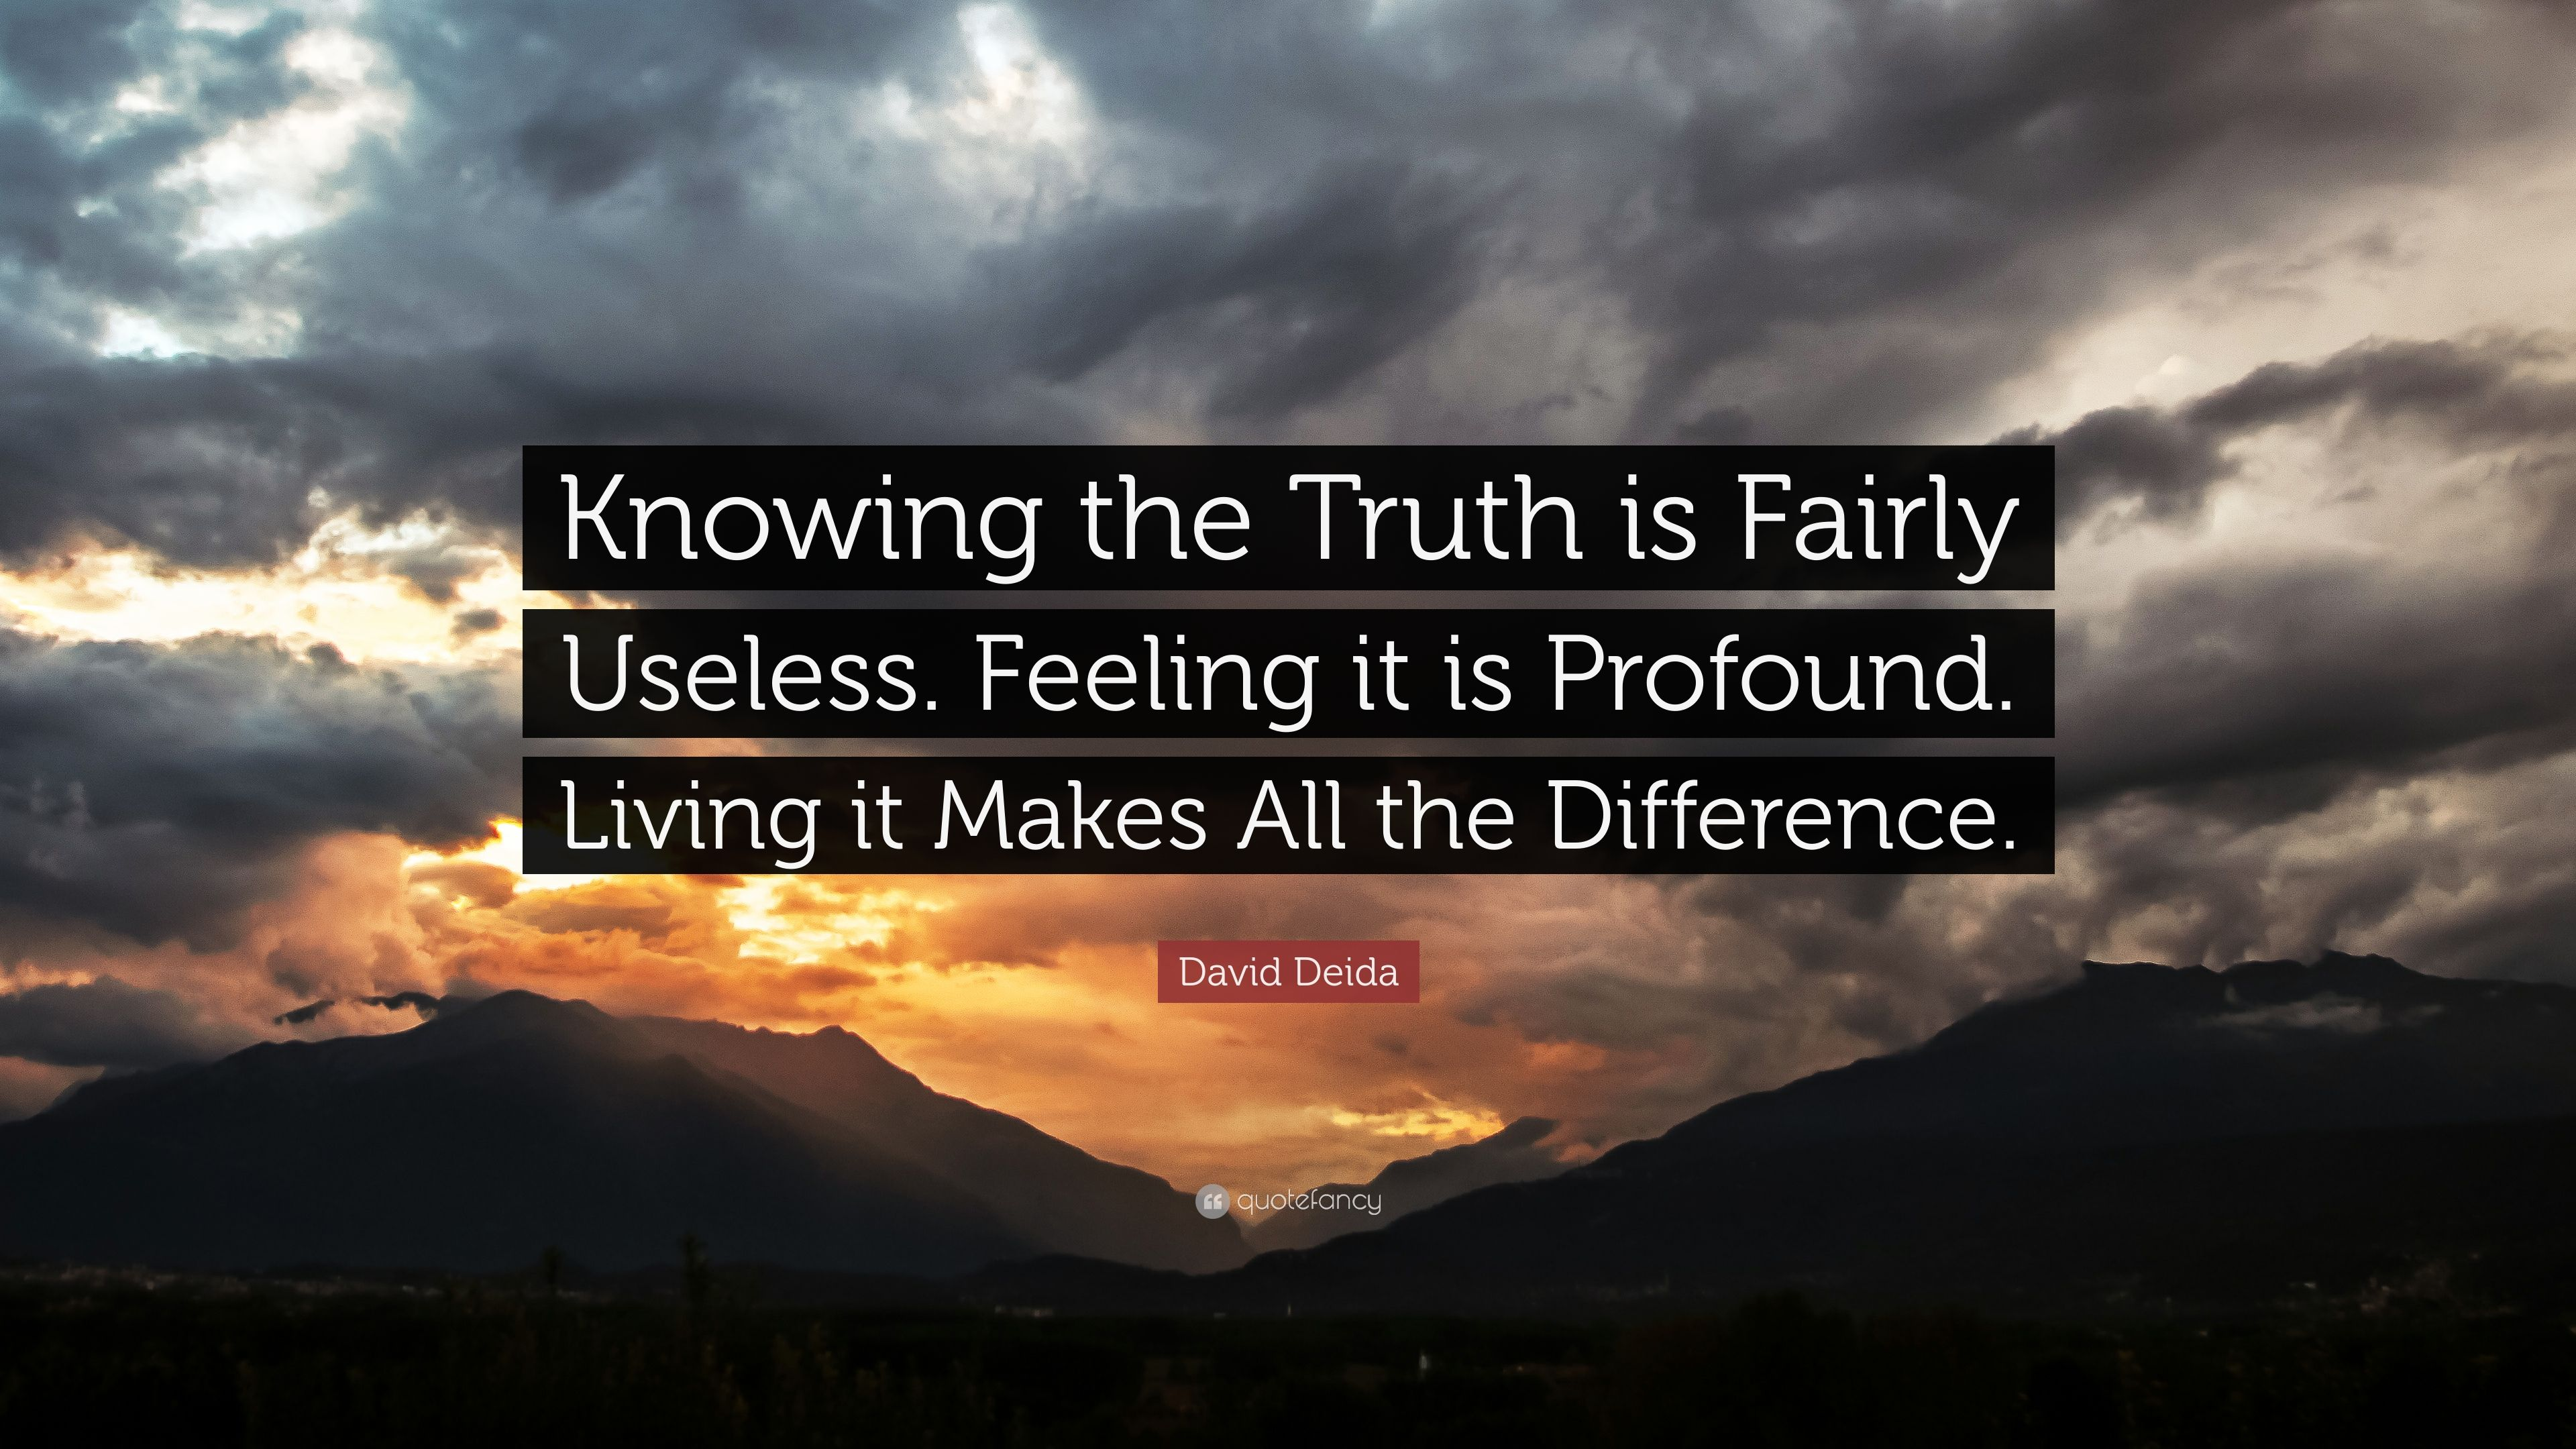 David Deida Quote: Knowing the Truth is Fairly Useless